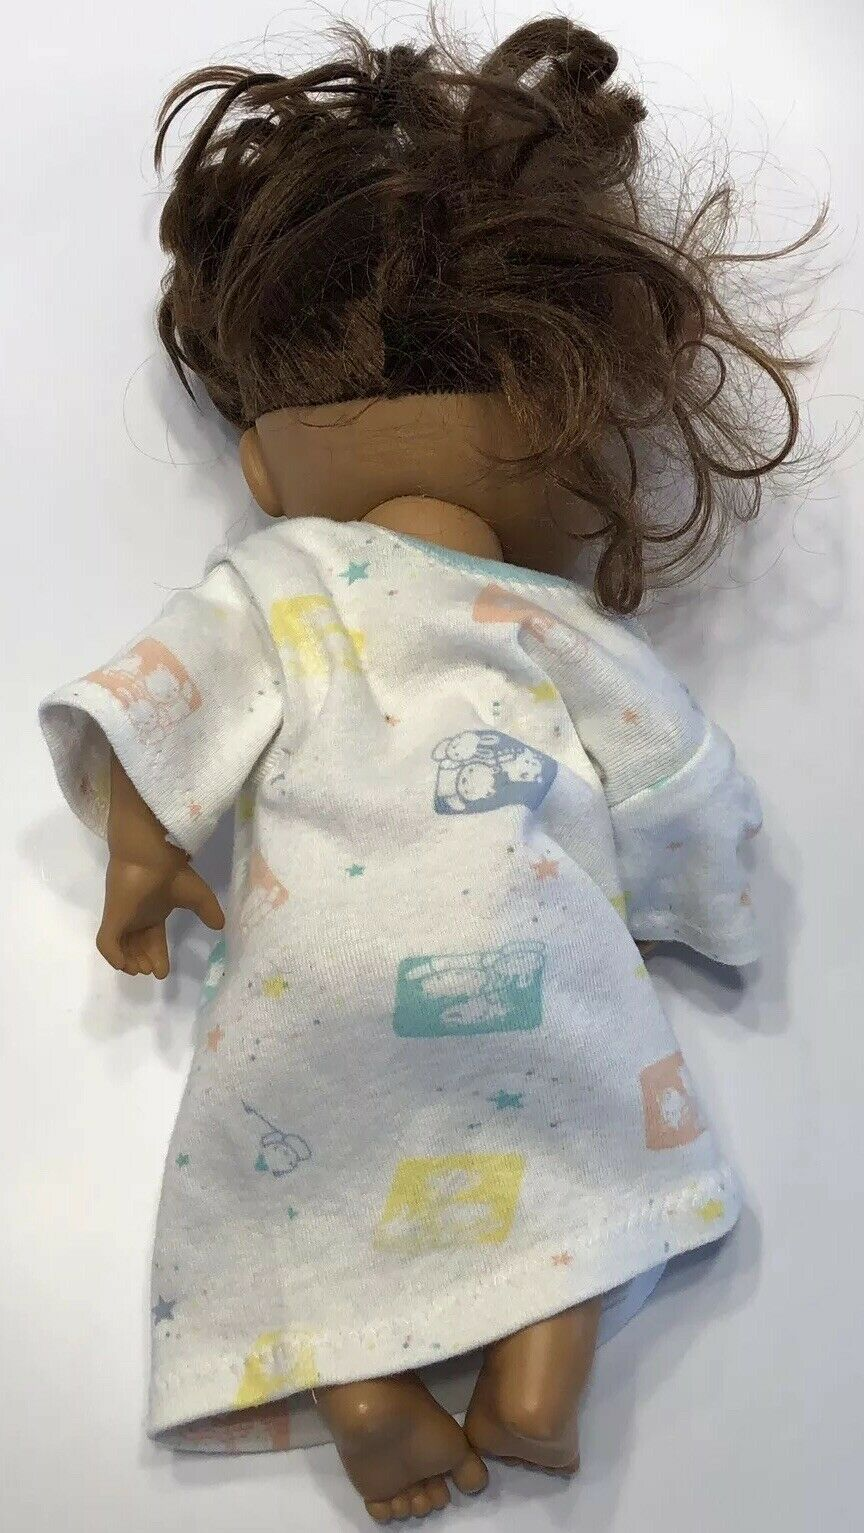 Baby Alive 2010 Drink & Wet Doll with 2 Teeth and Nightgown Doll Toy image 4